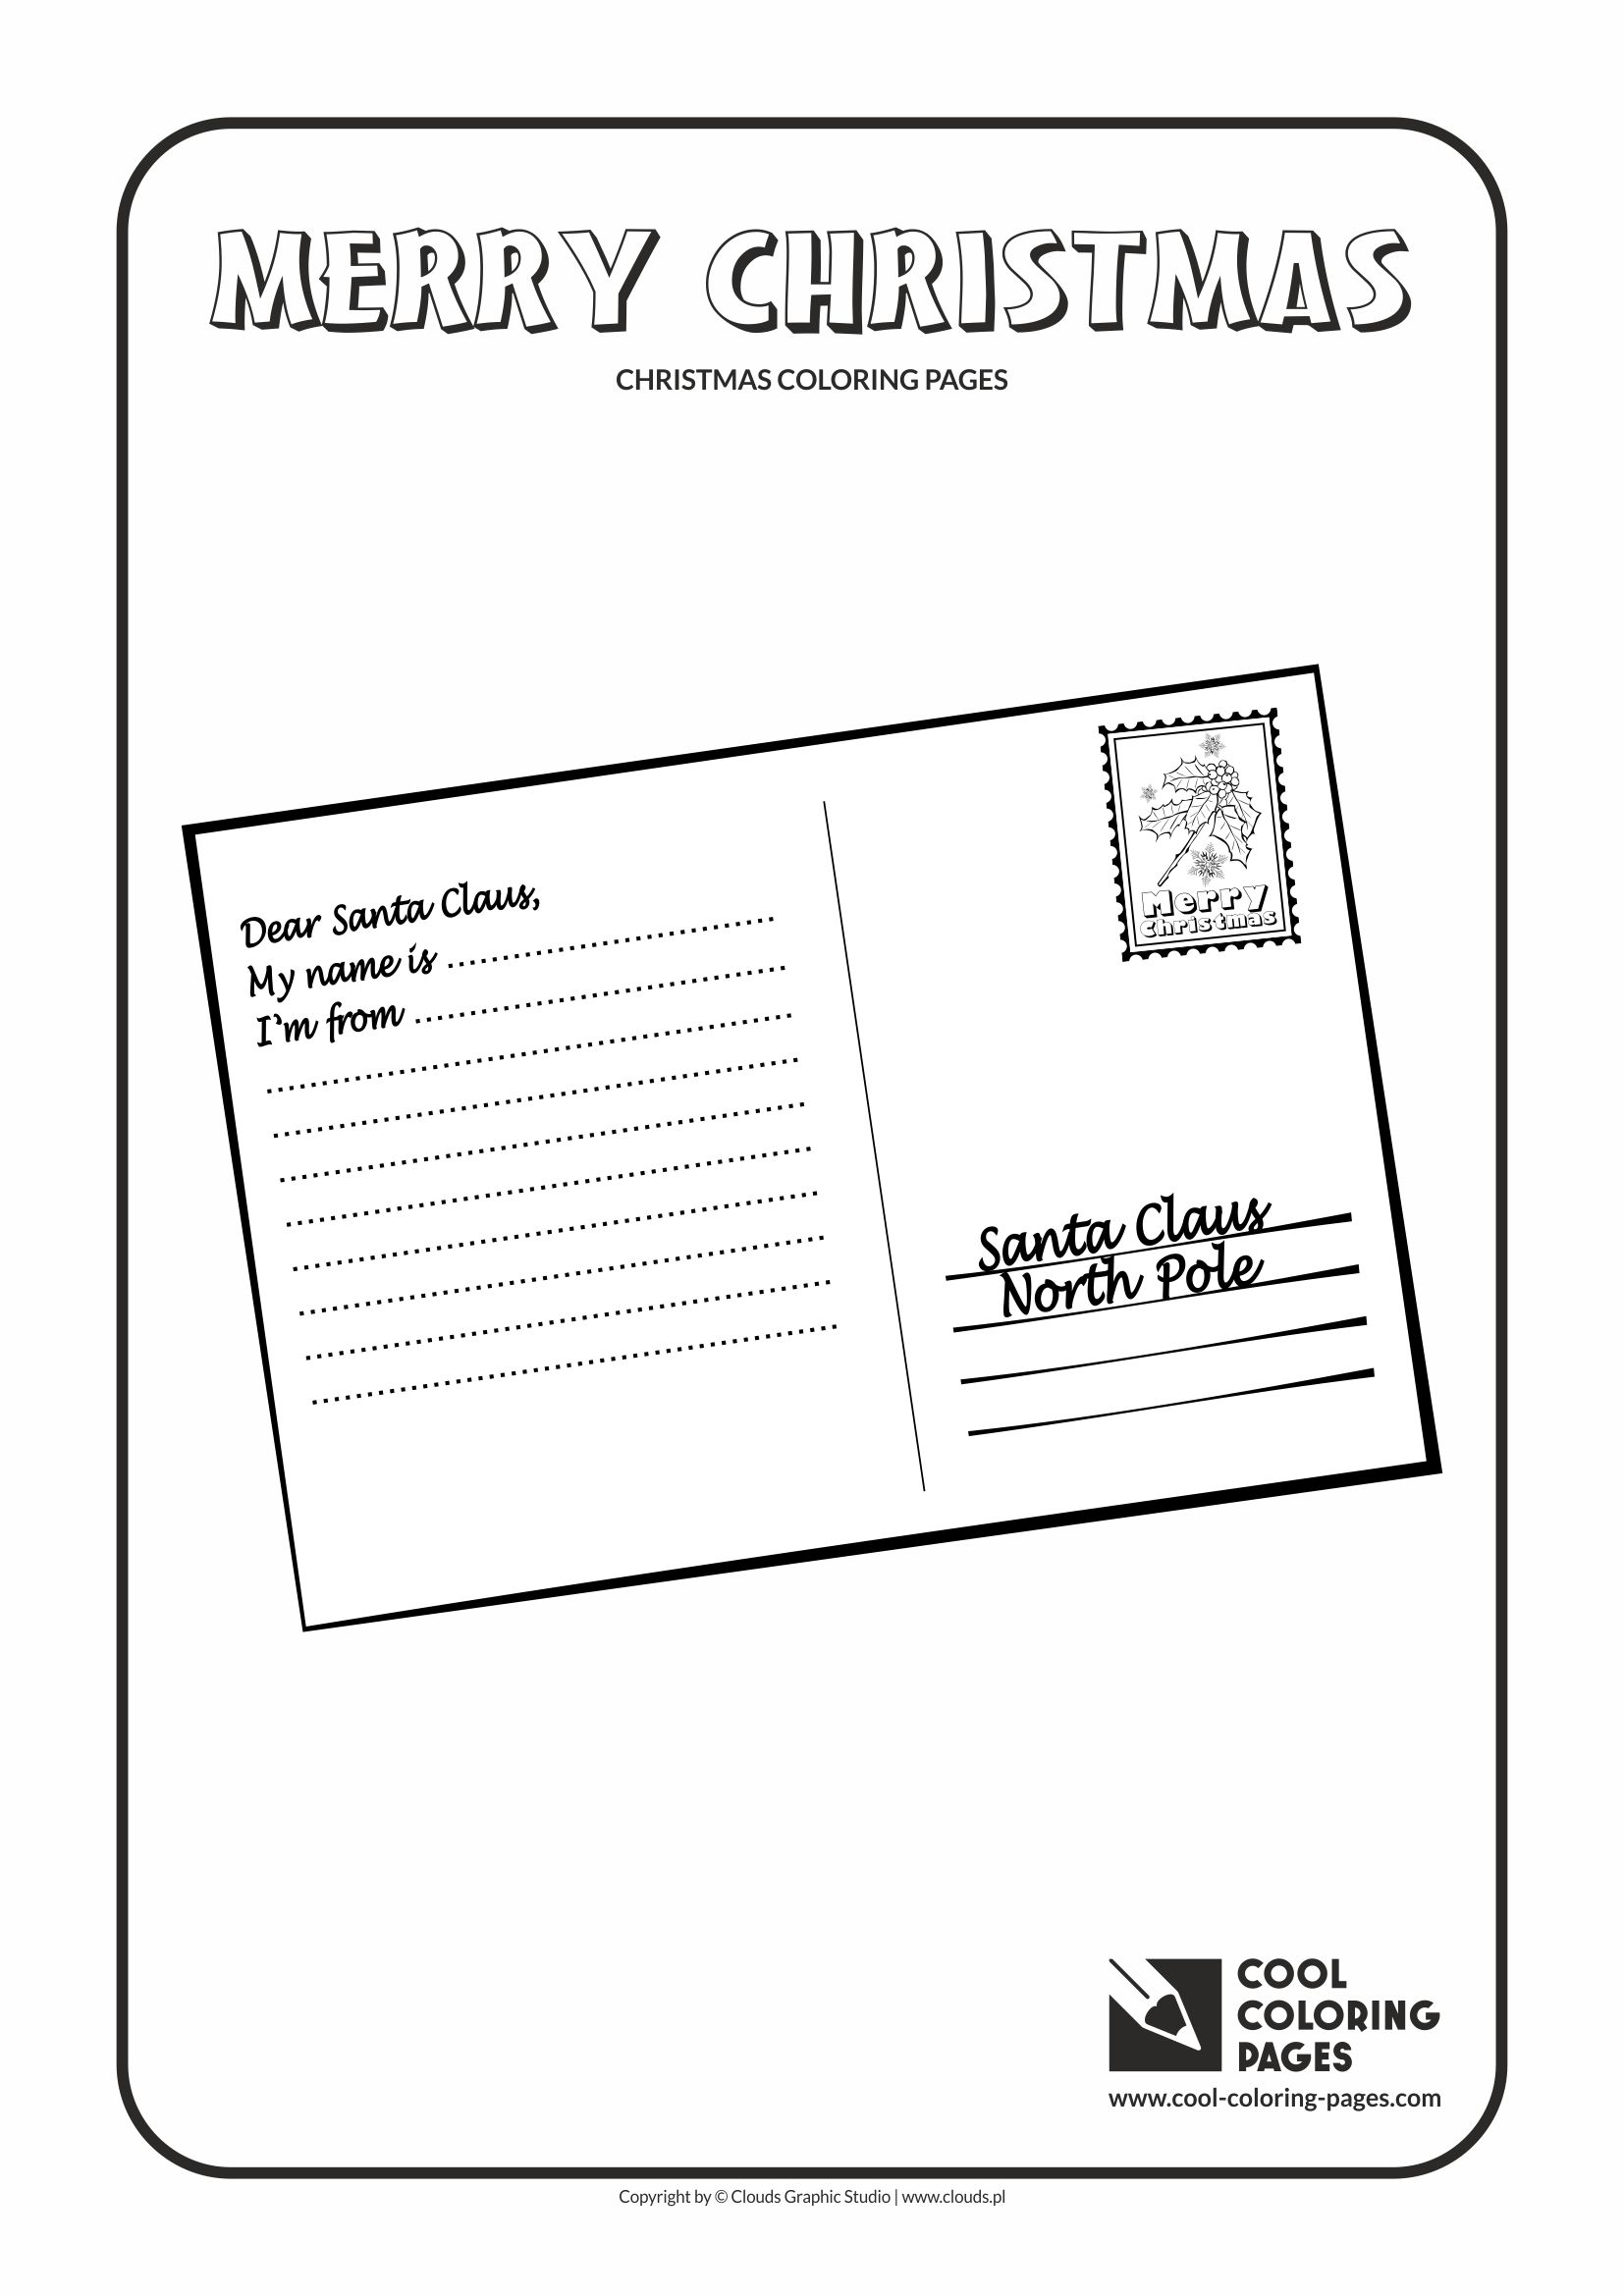 Cool Coloring Pages Holidays Coloring Pages